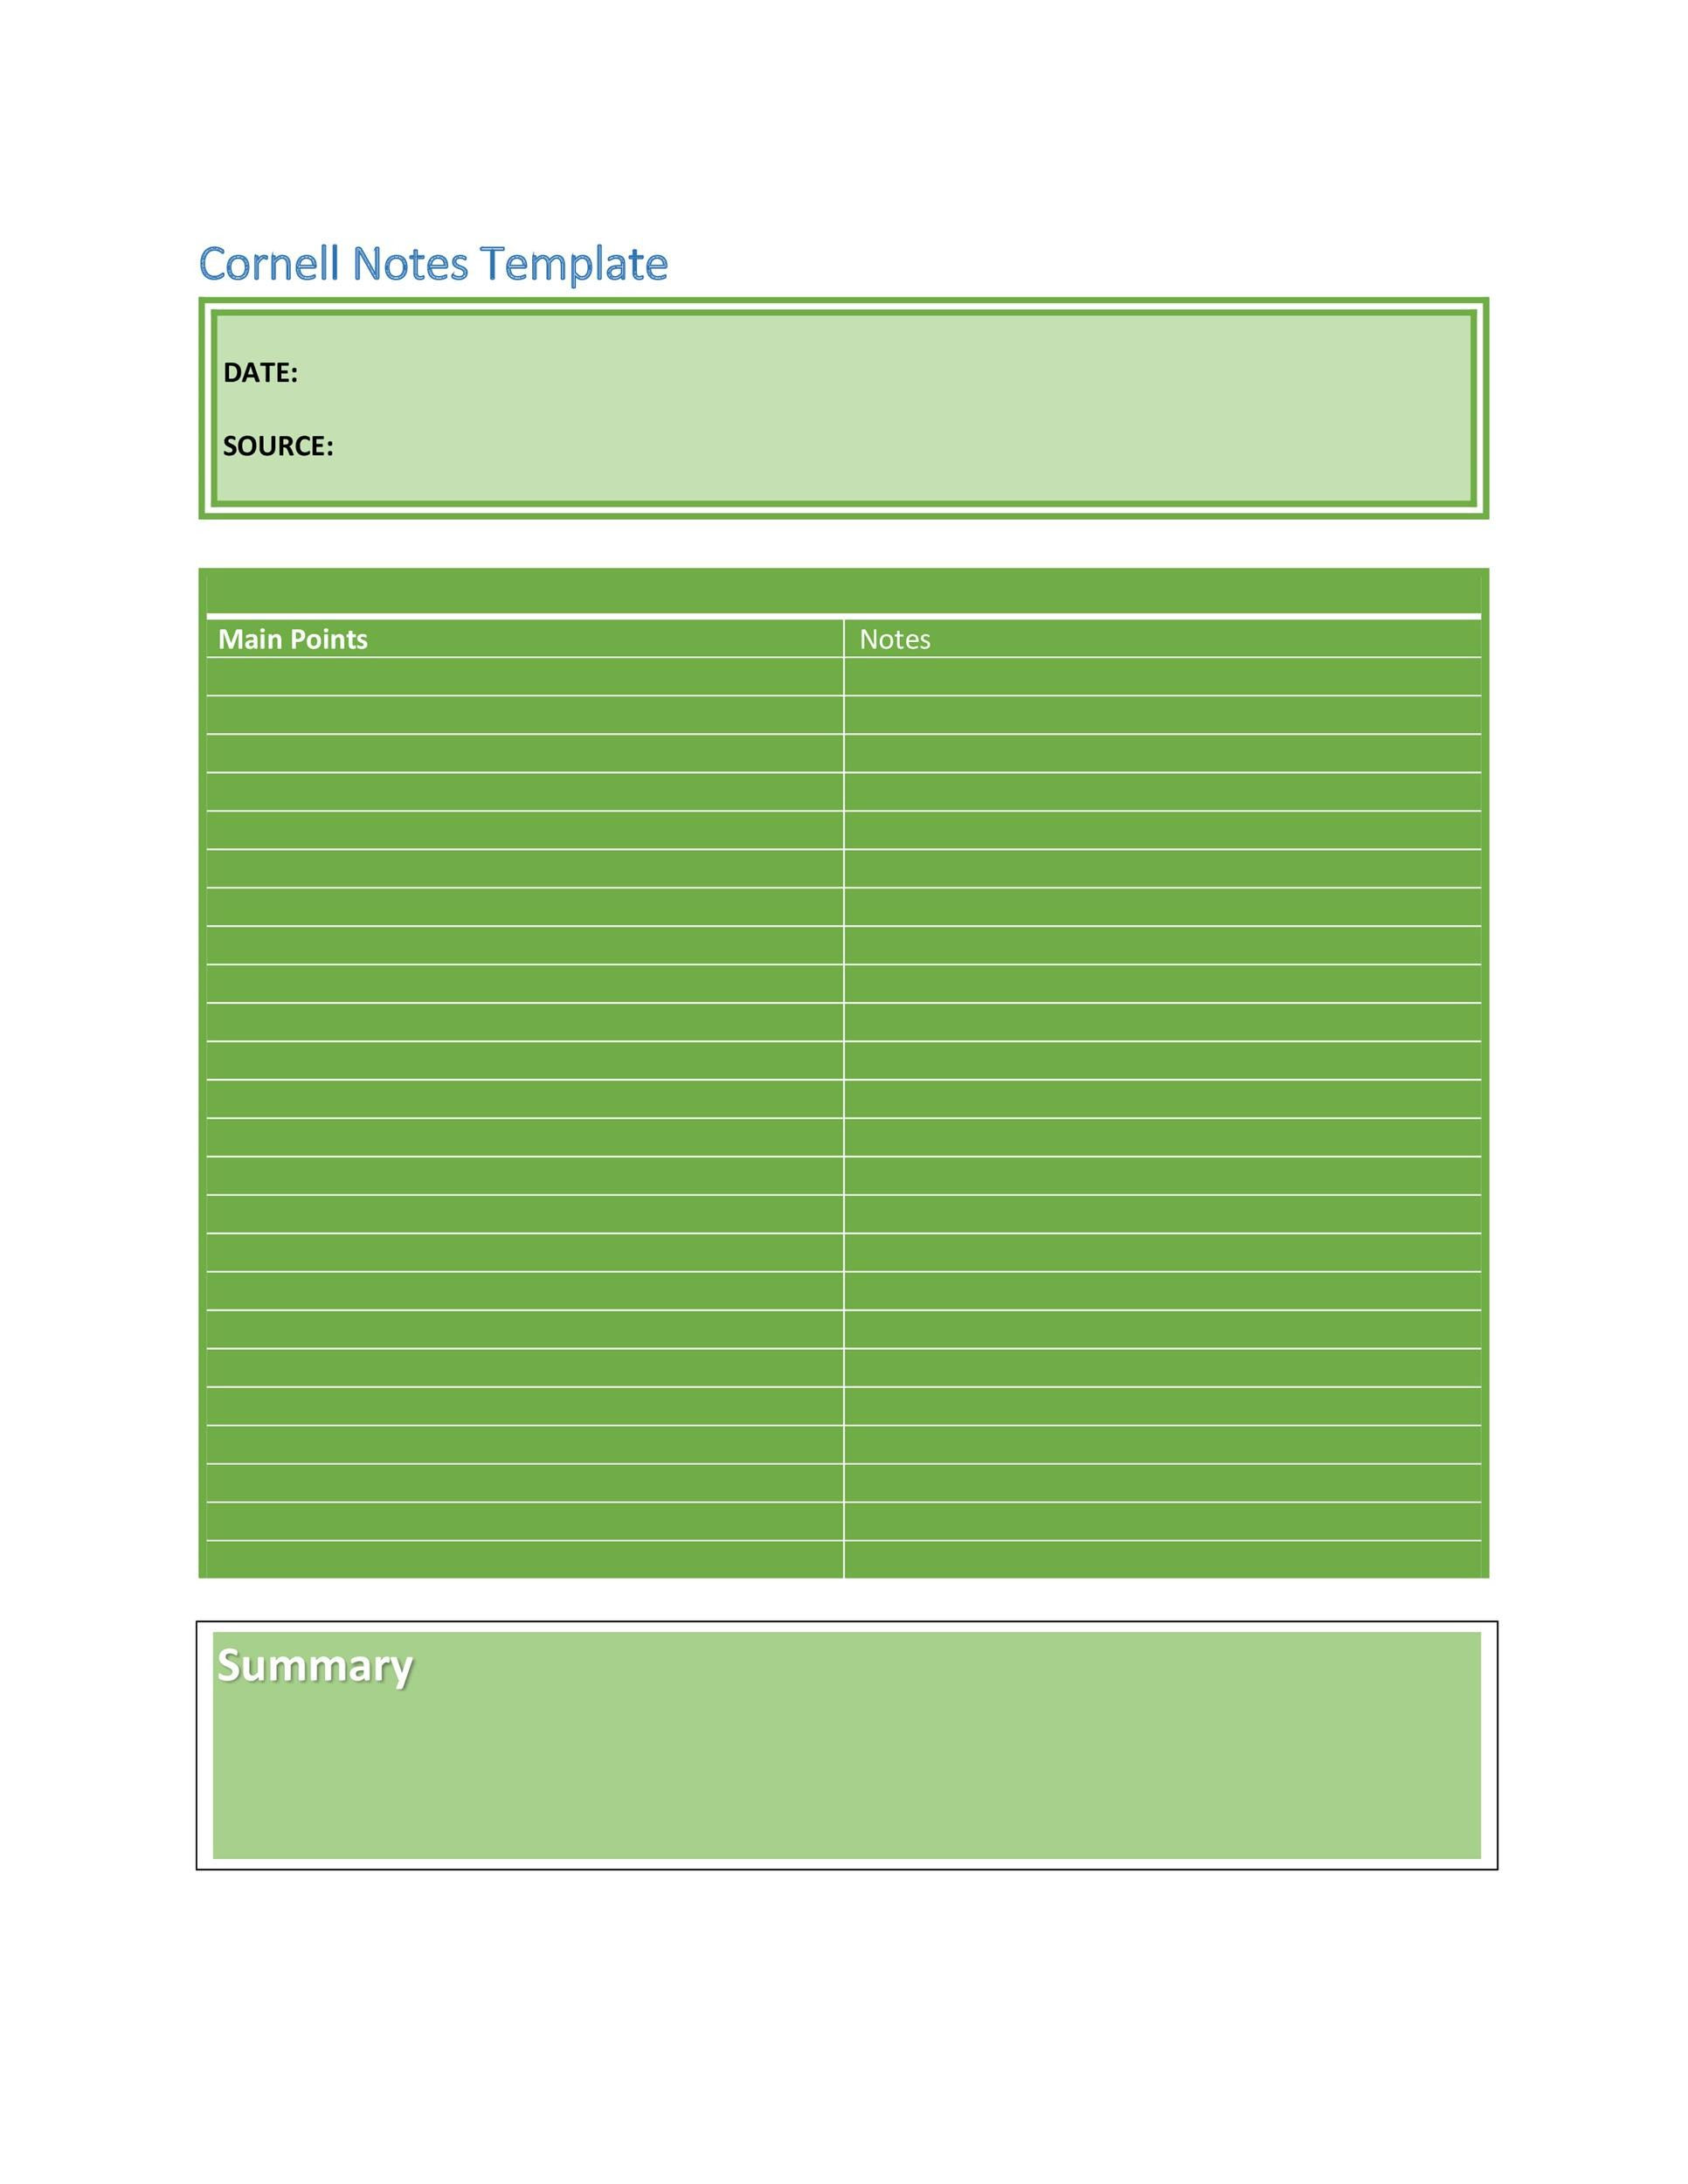 Free Cornell Notes Template 12